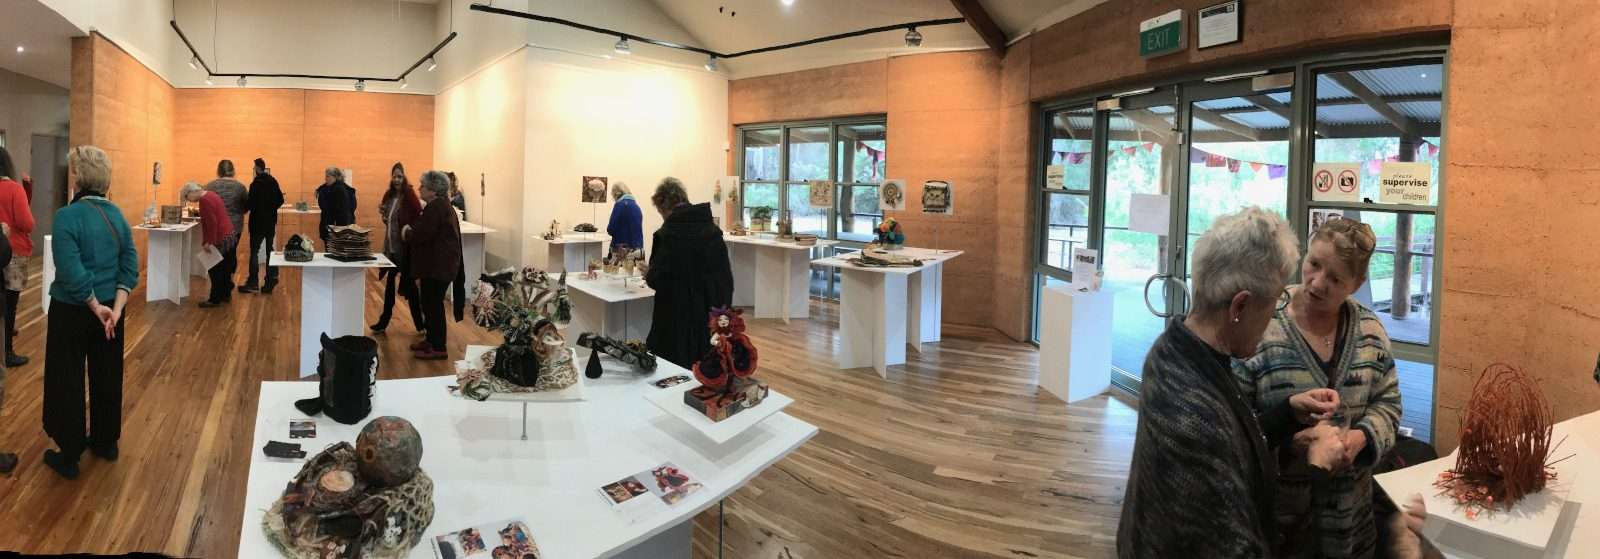 WAFTA exhibition panorama 2018 Painted tree gallery by Southern Forest Arts